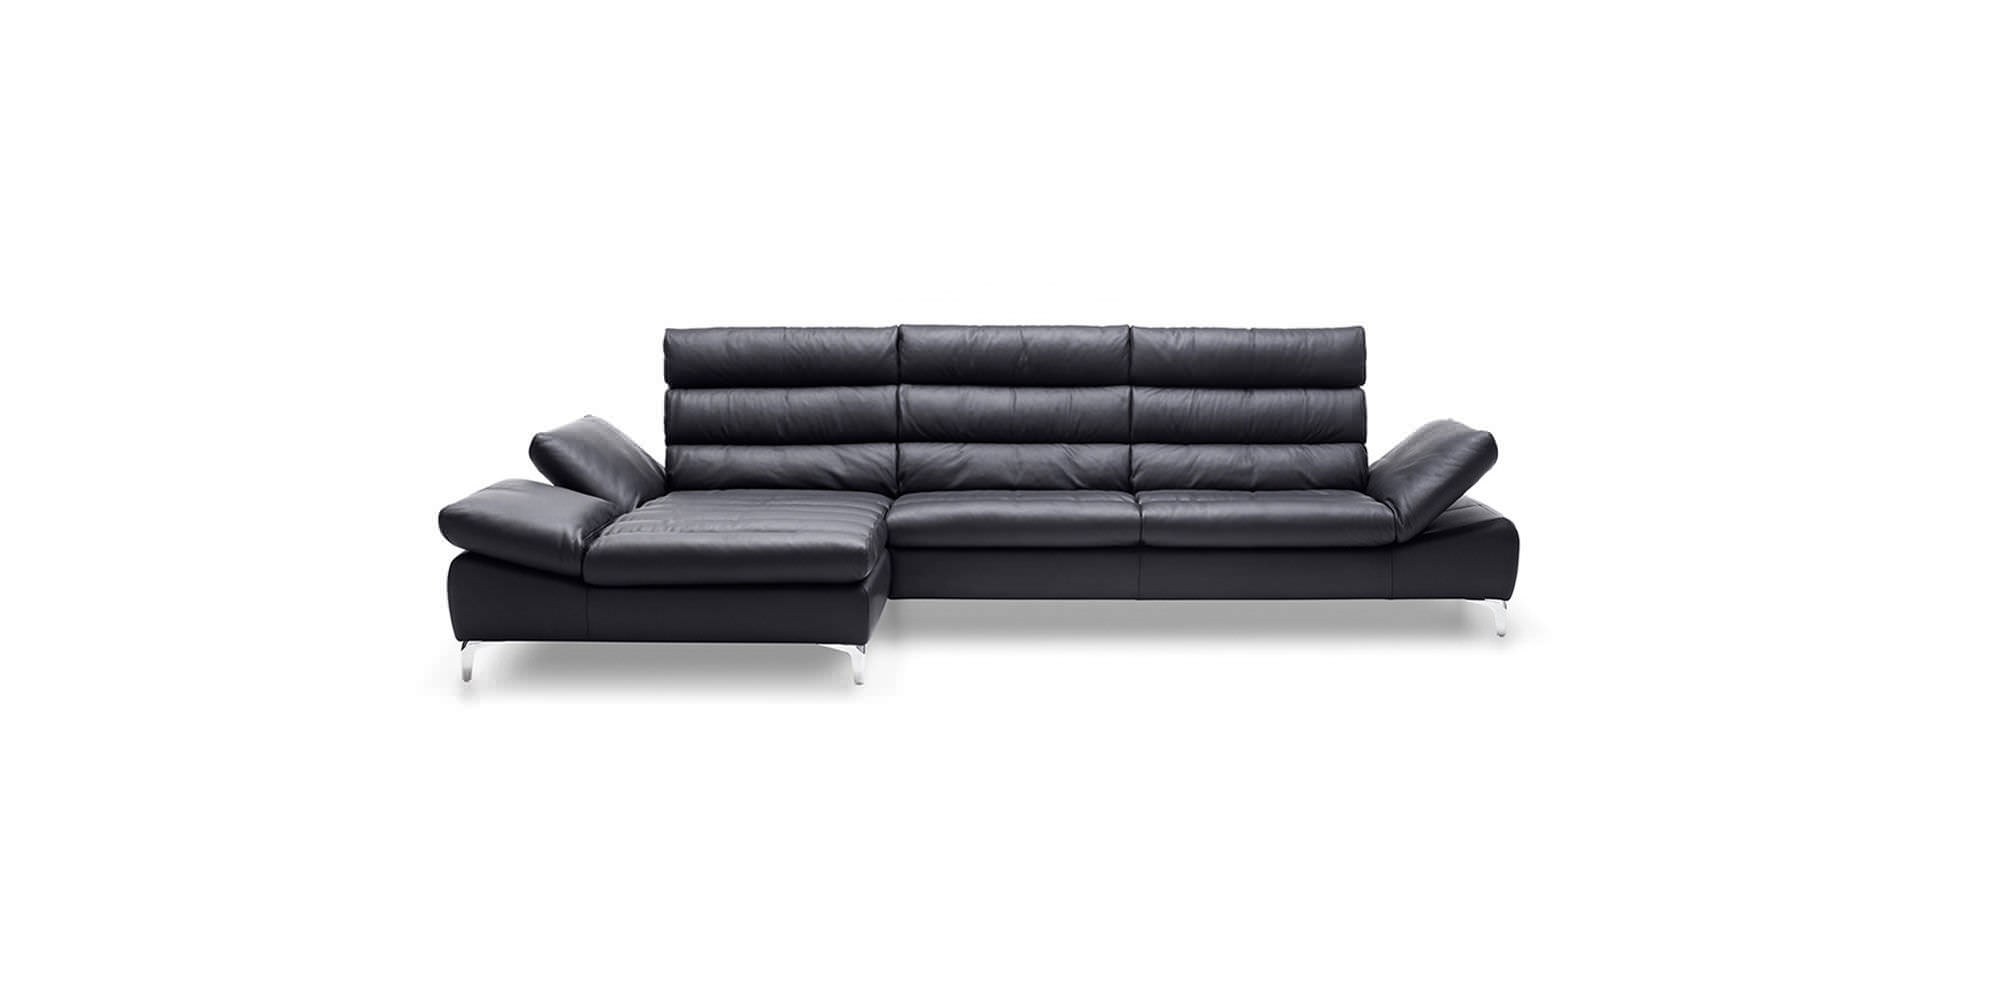 KG; Modular Sofa / Corner / Contemporary / Leather INEZ Ewald Schillig GmbH  U0026 Co.